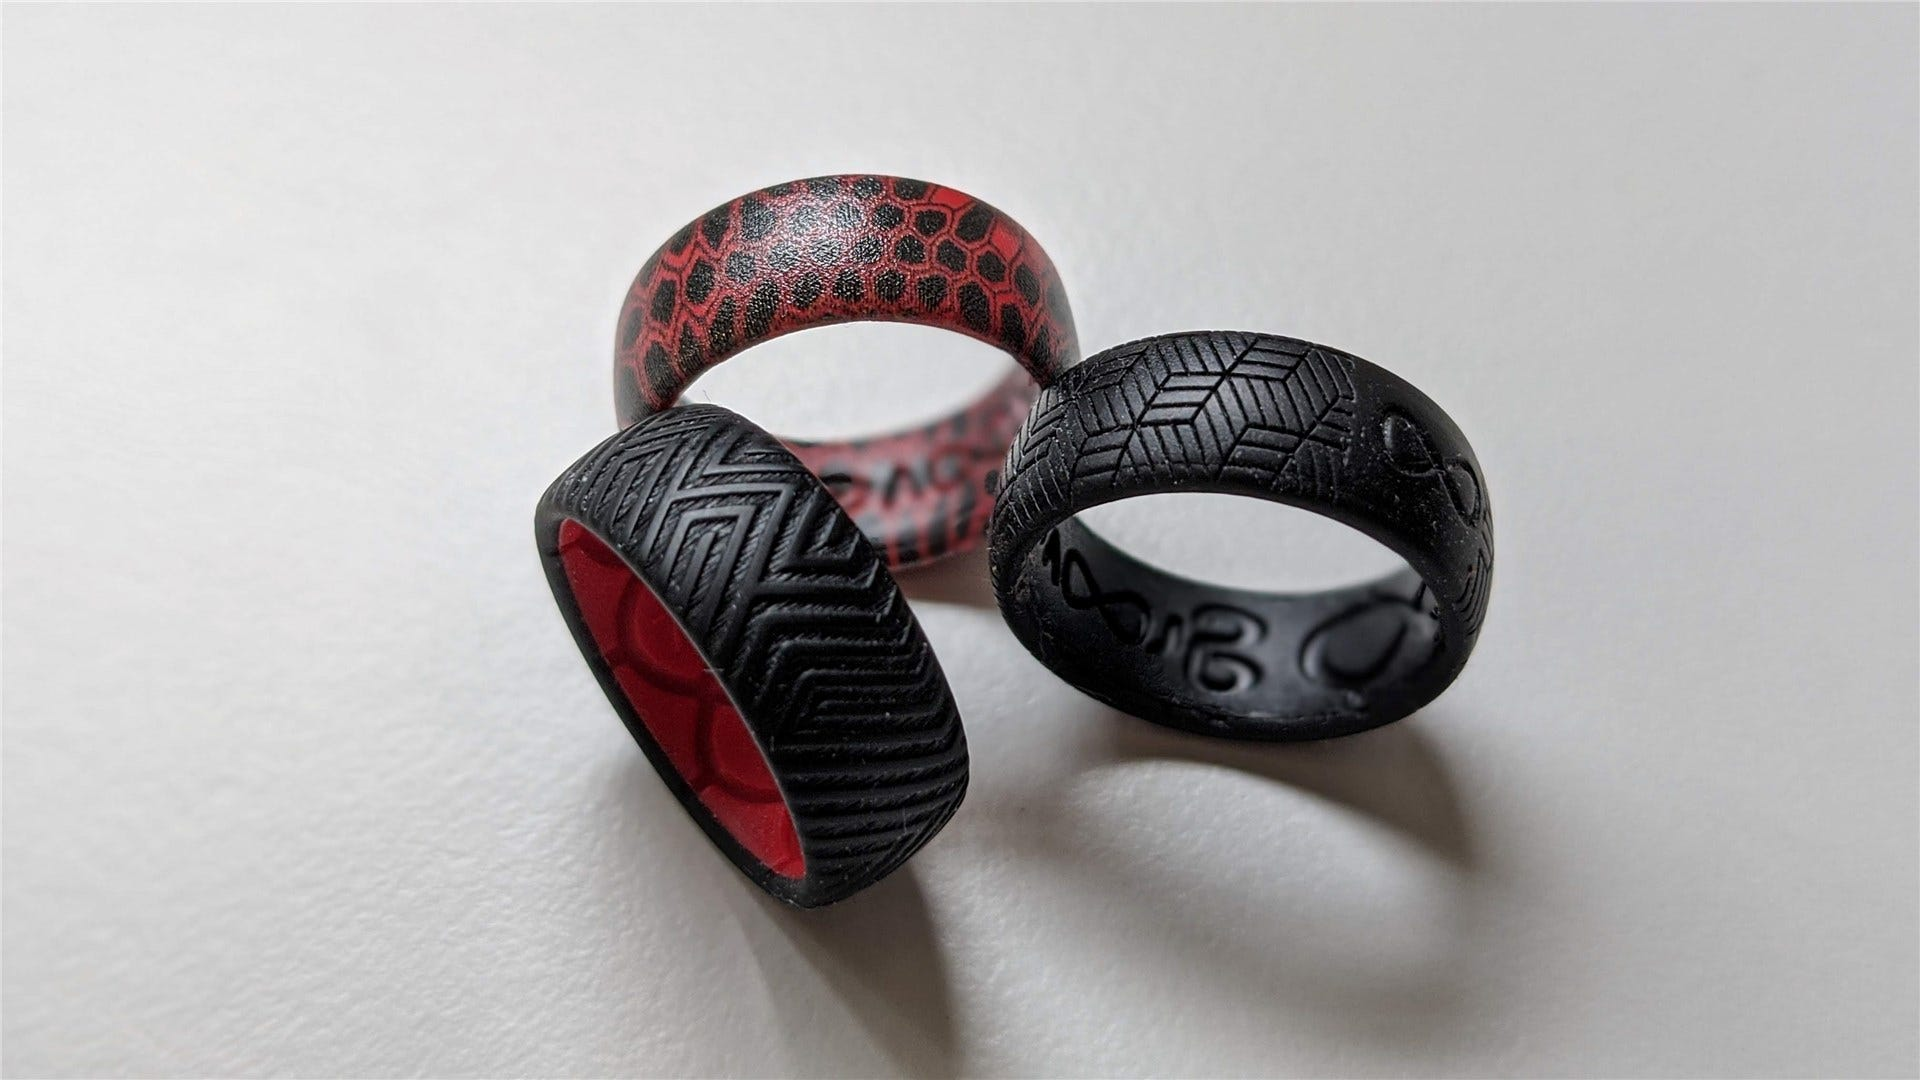 Groove life rings in black, black and red, and red.